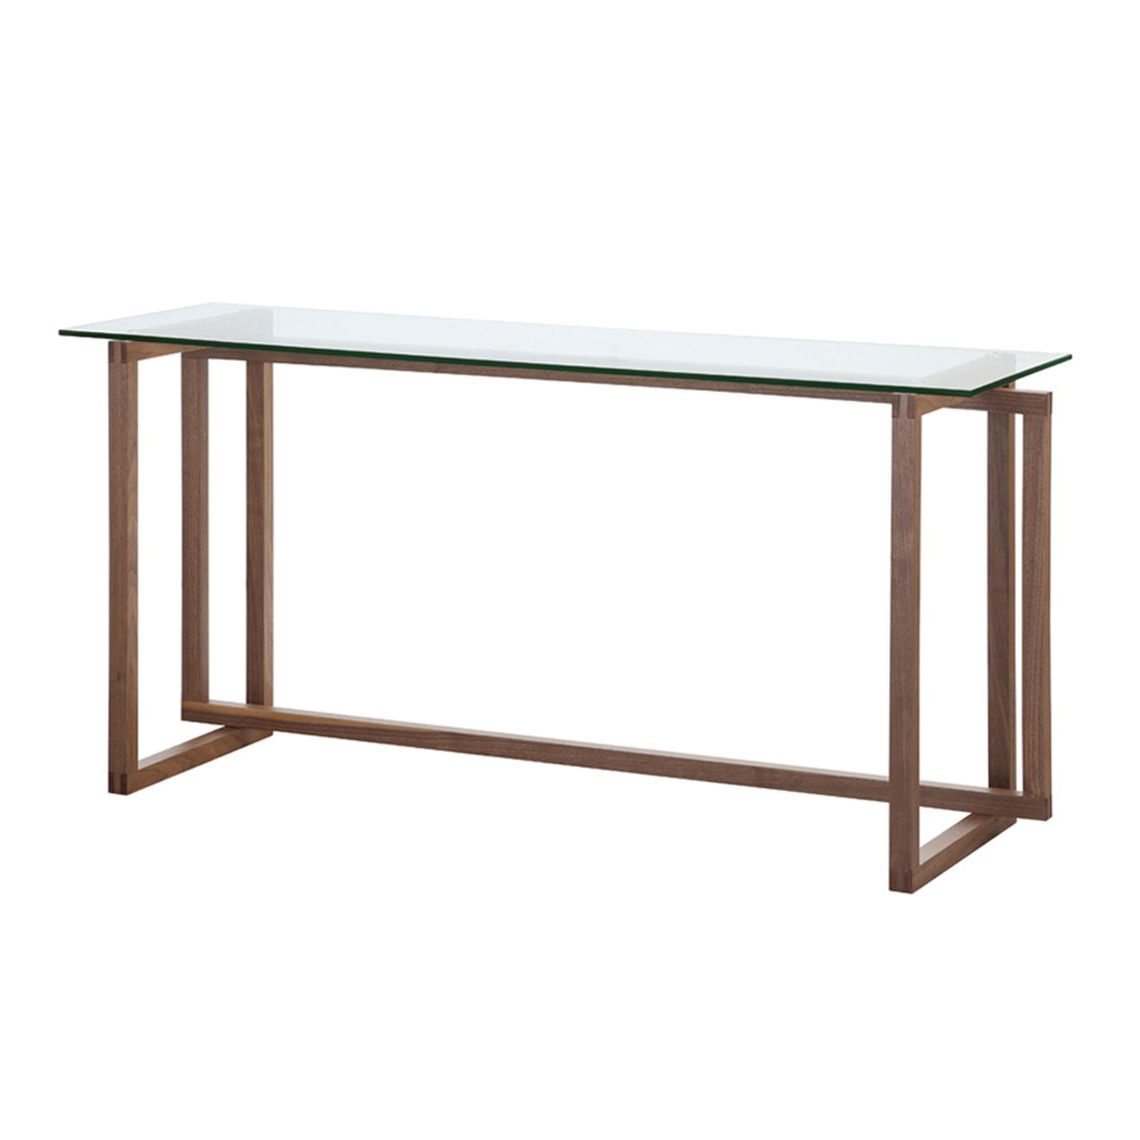 Kyra Console Table | Freedom Inside Kyra Console Tables (View 7 of 20)